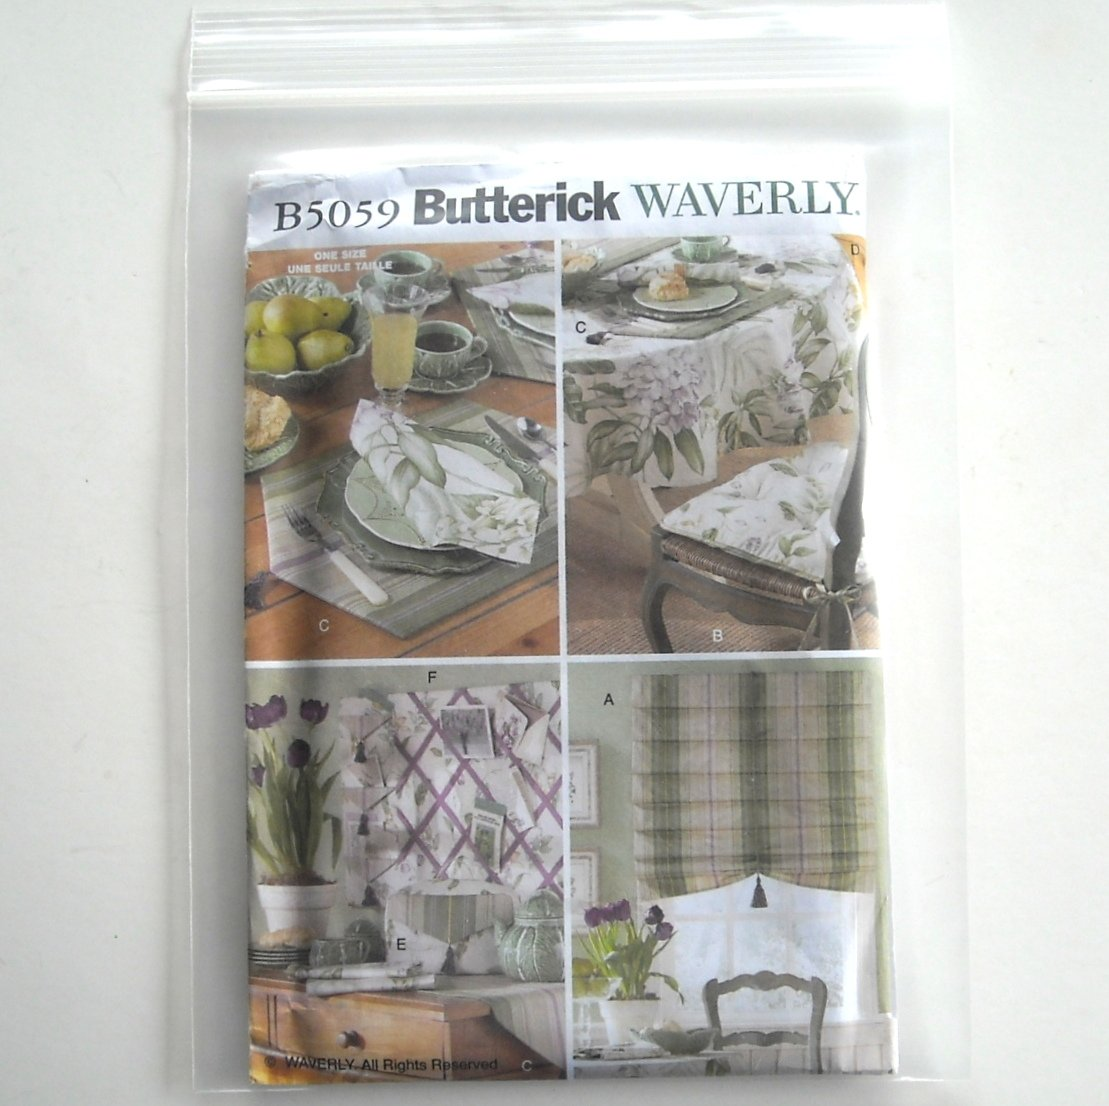 Butterick Pattern B5059 Waverly Kitchen Items Shade Table Runner Placemat